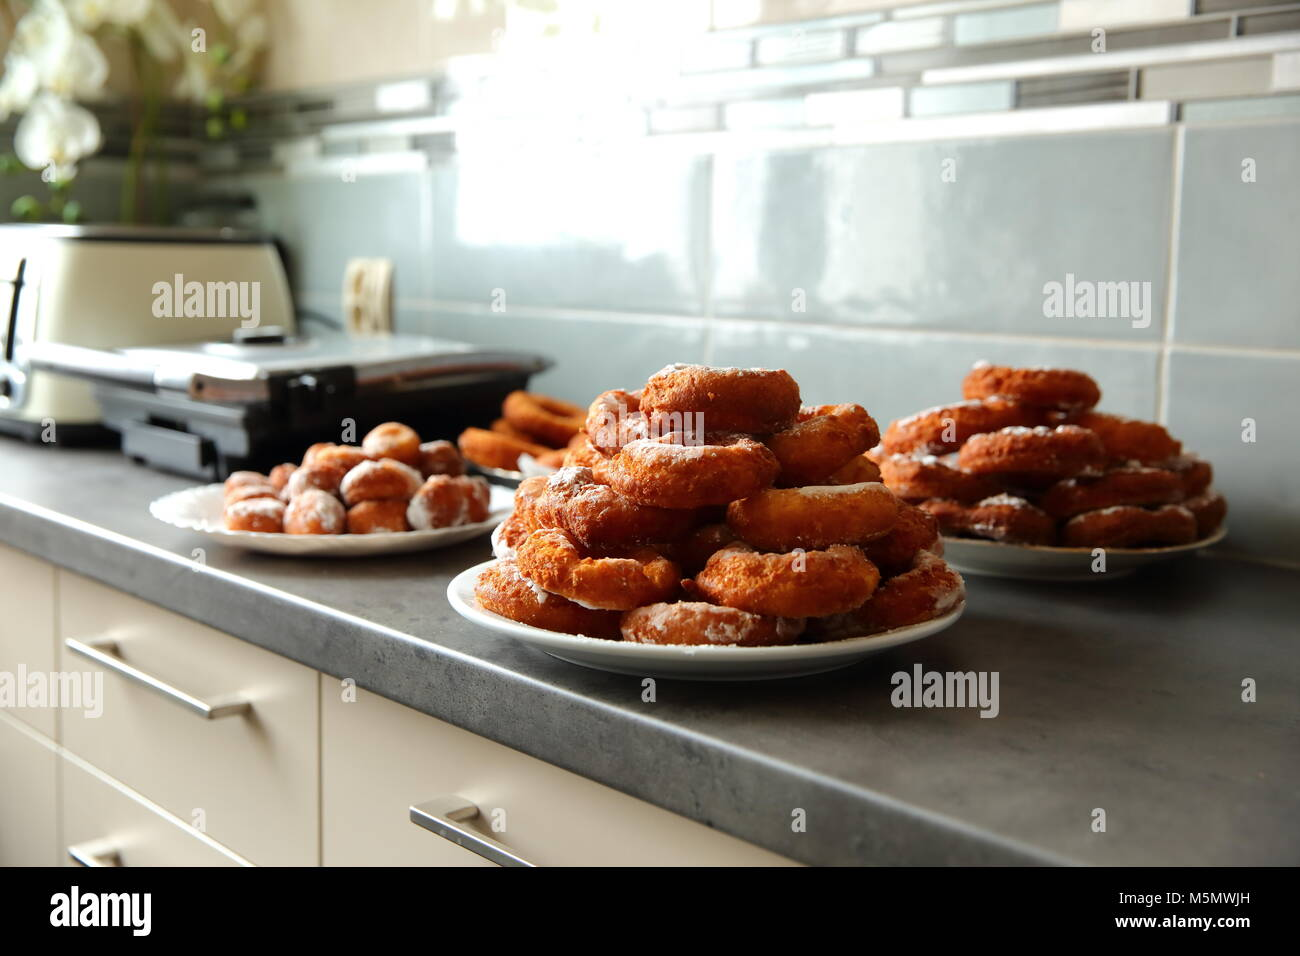 A homemade donut, despite the non-ideal shape, is a taste superior to any other donut purchased in a store or in - Stock Image